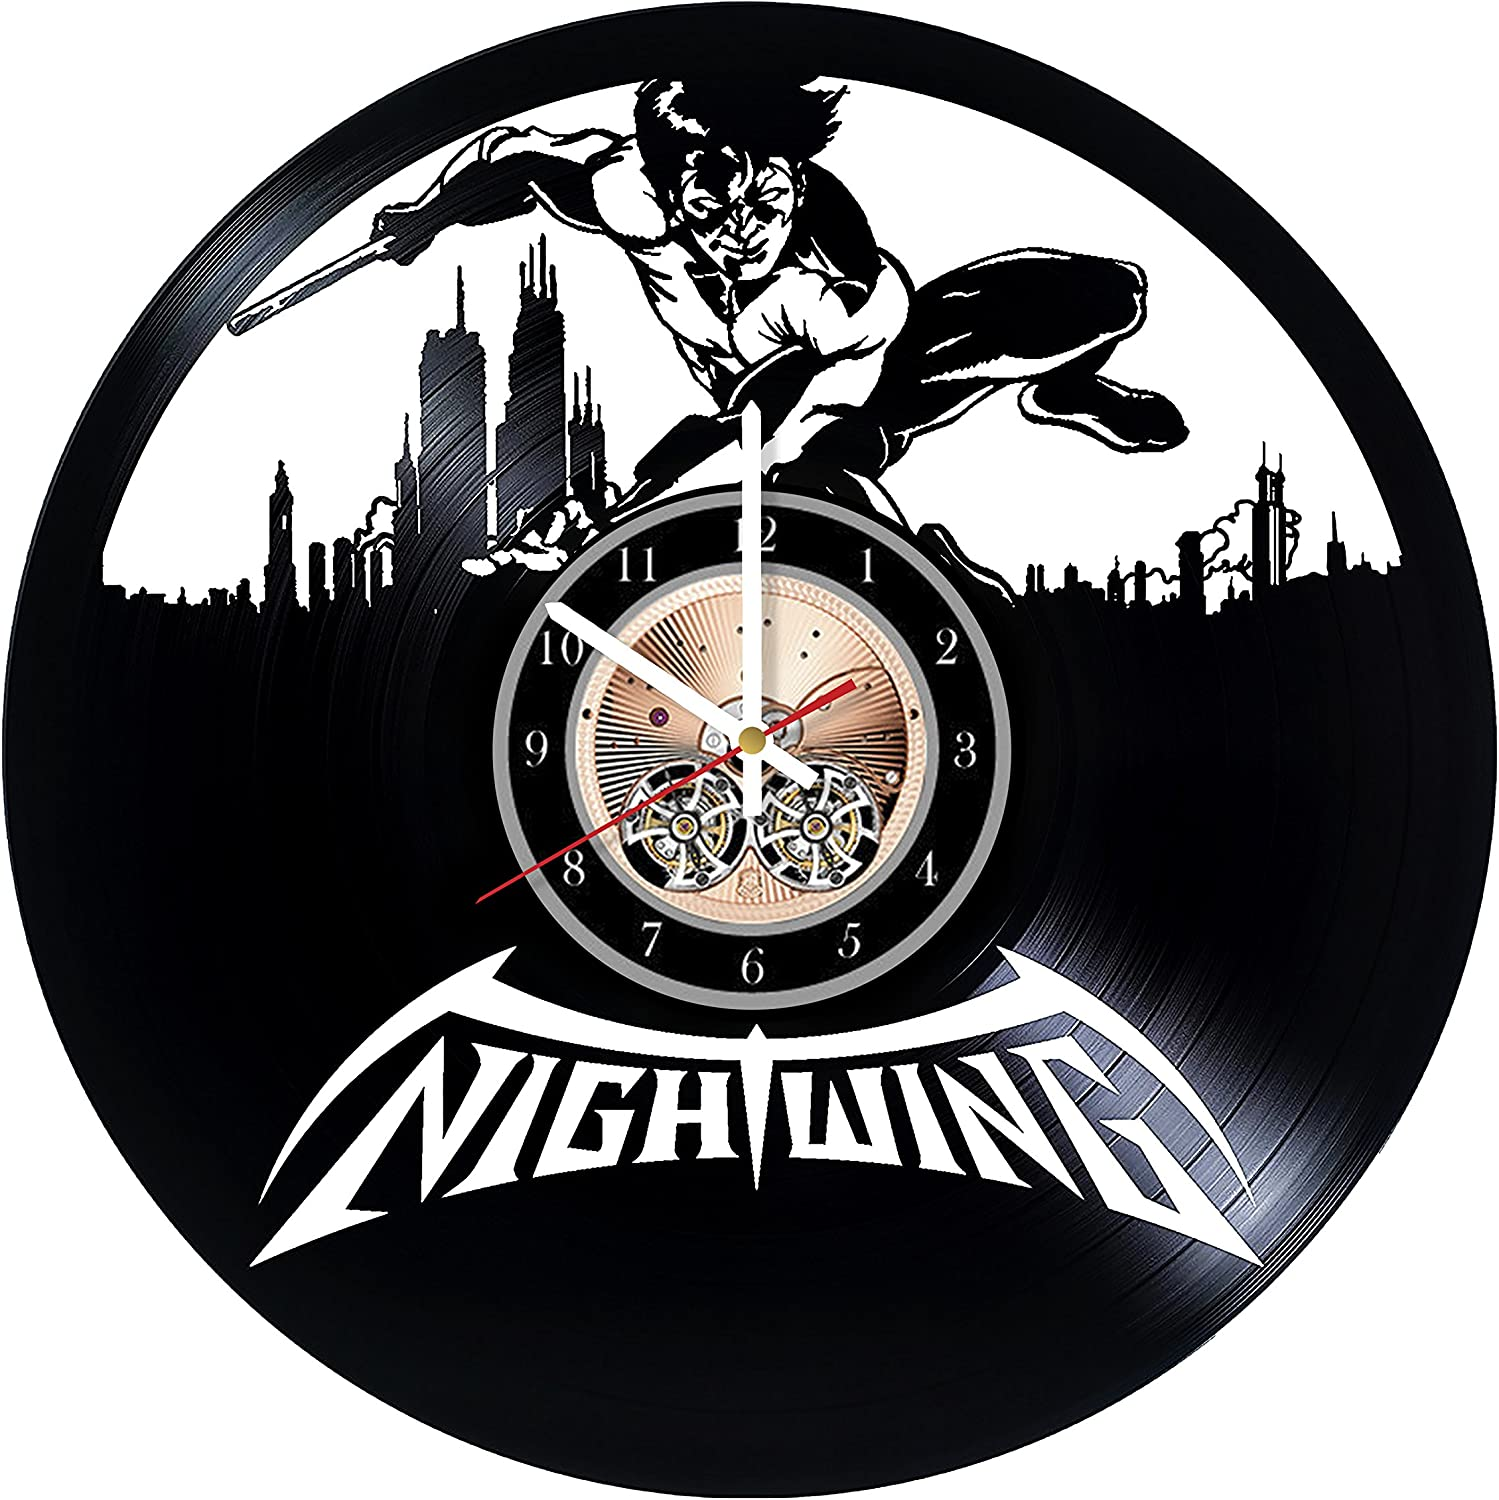 Amazon Com Nightwing American Comic Books Design Art Vinyl Record Wall Clock 12 Really The Most Original Gift For Him And Her Perfect Element Of The Interior And Amazing Home Decor